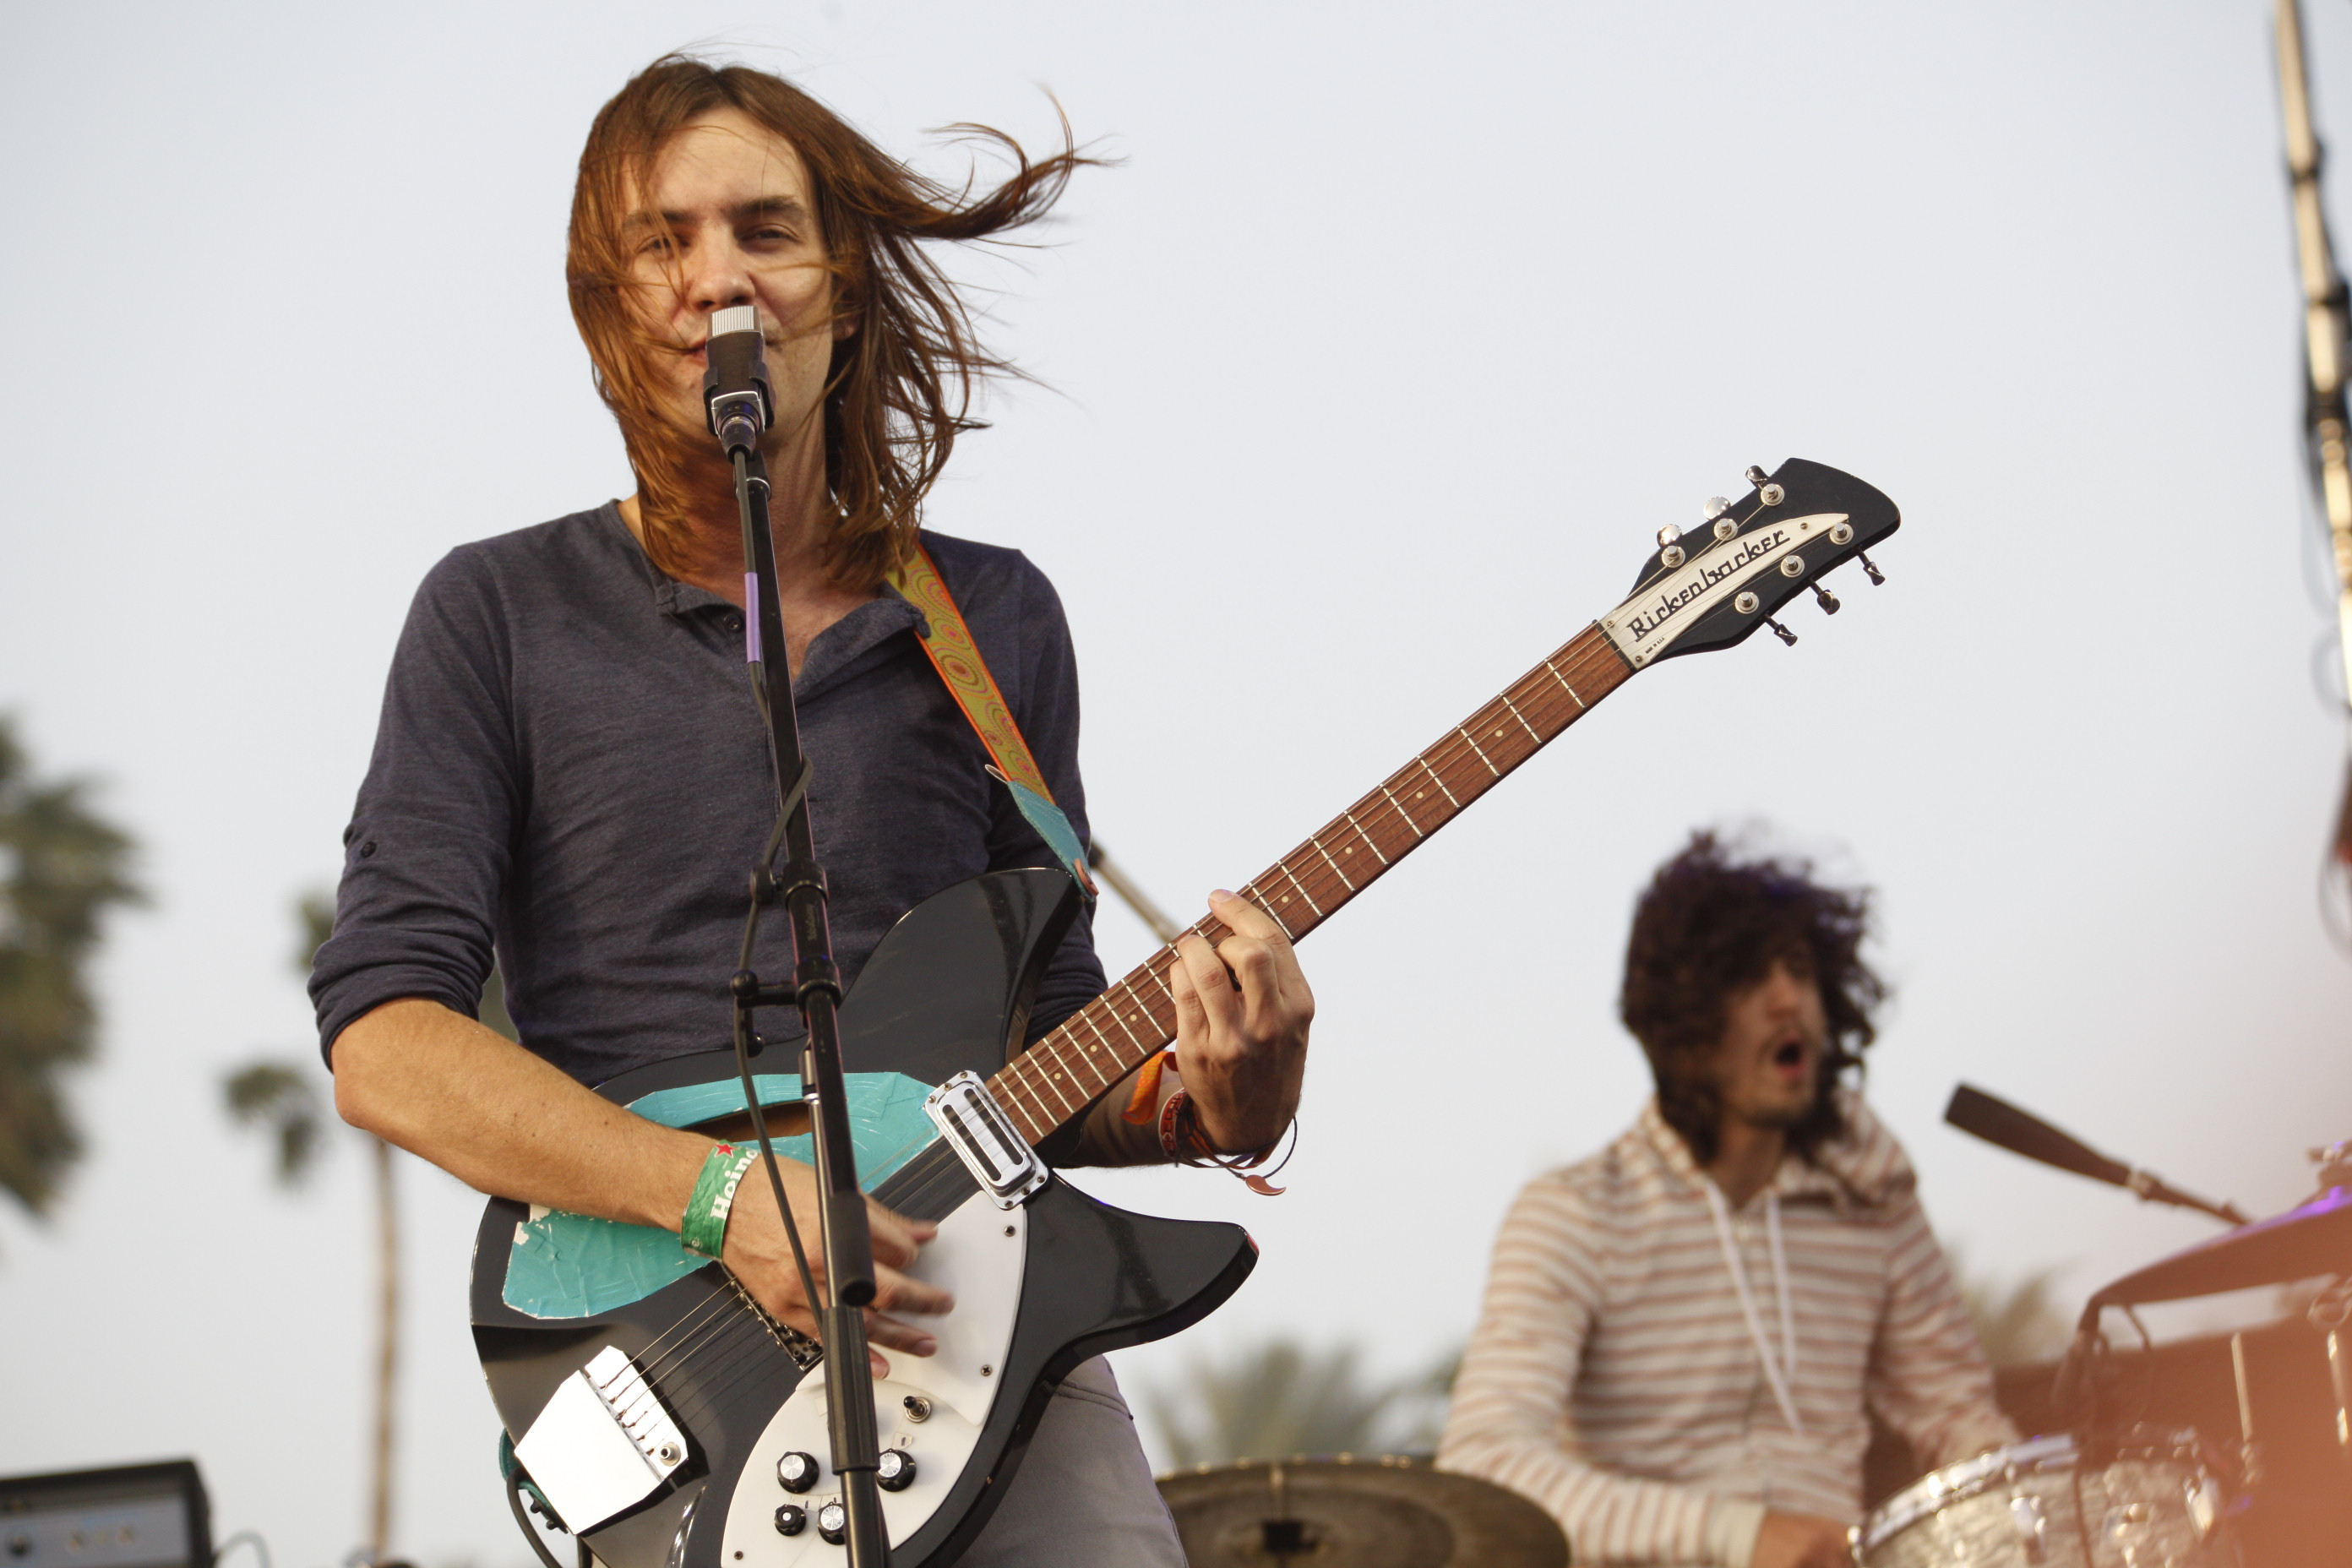 Desert Daze Festival 2018 Day One Featuring Warpaint, Pond, Some Tame Impala and a Storm